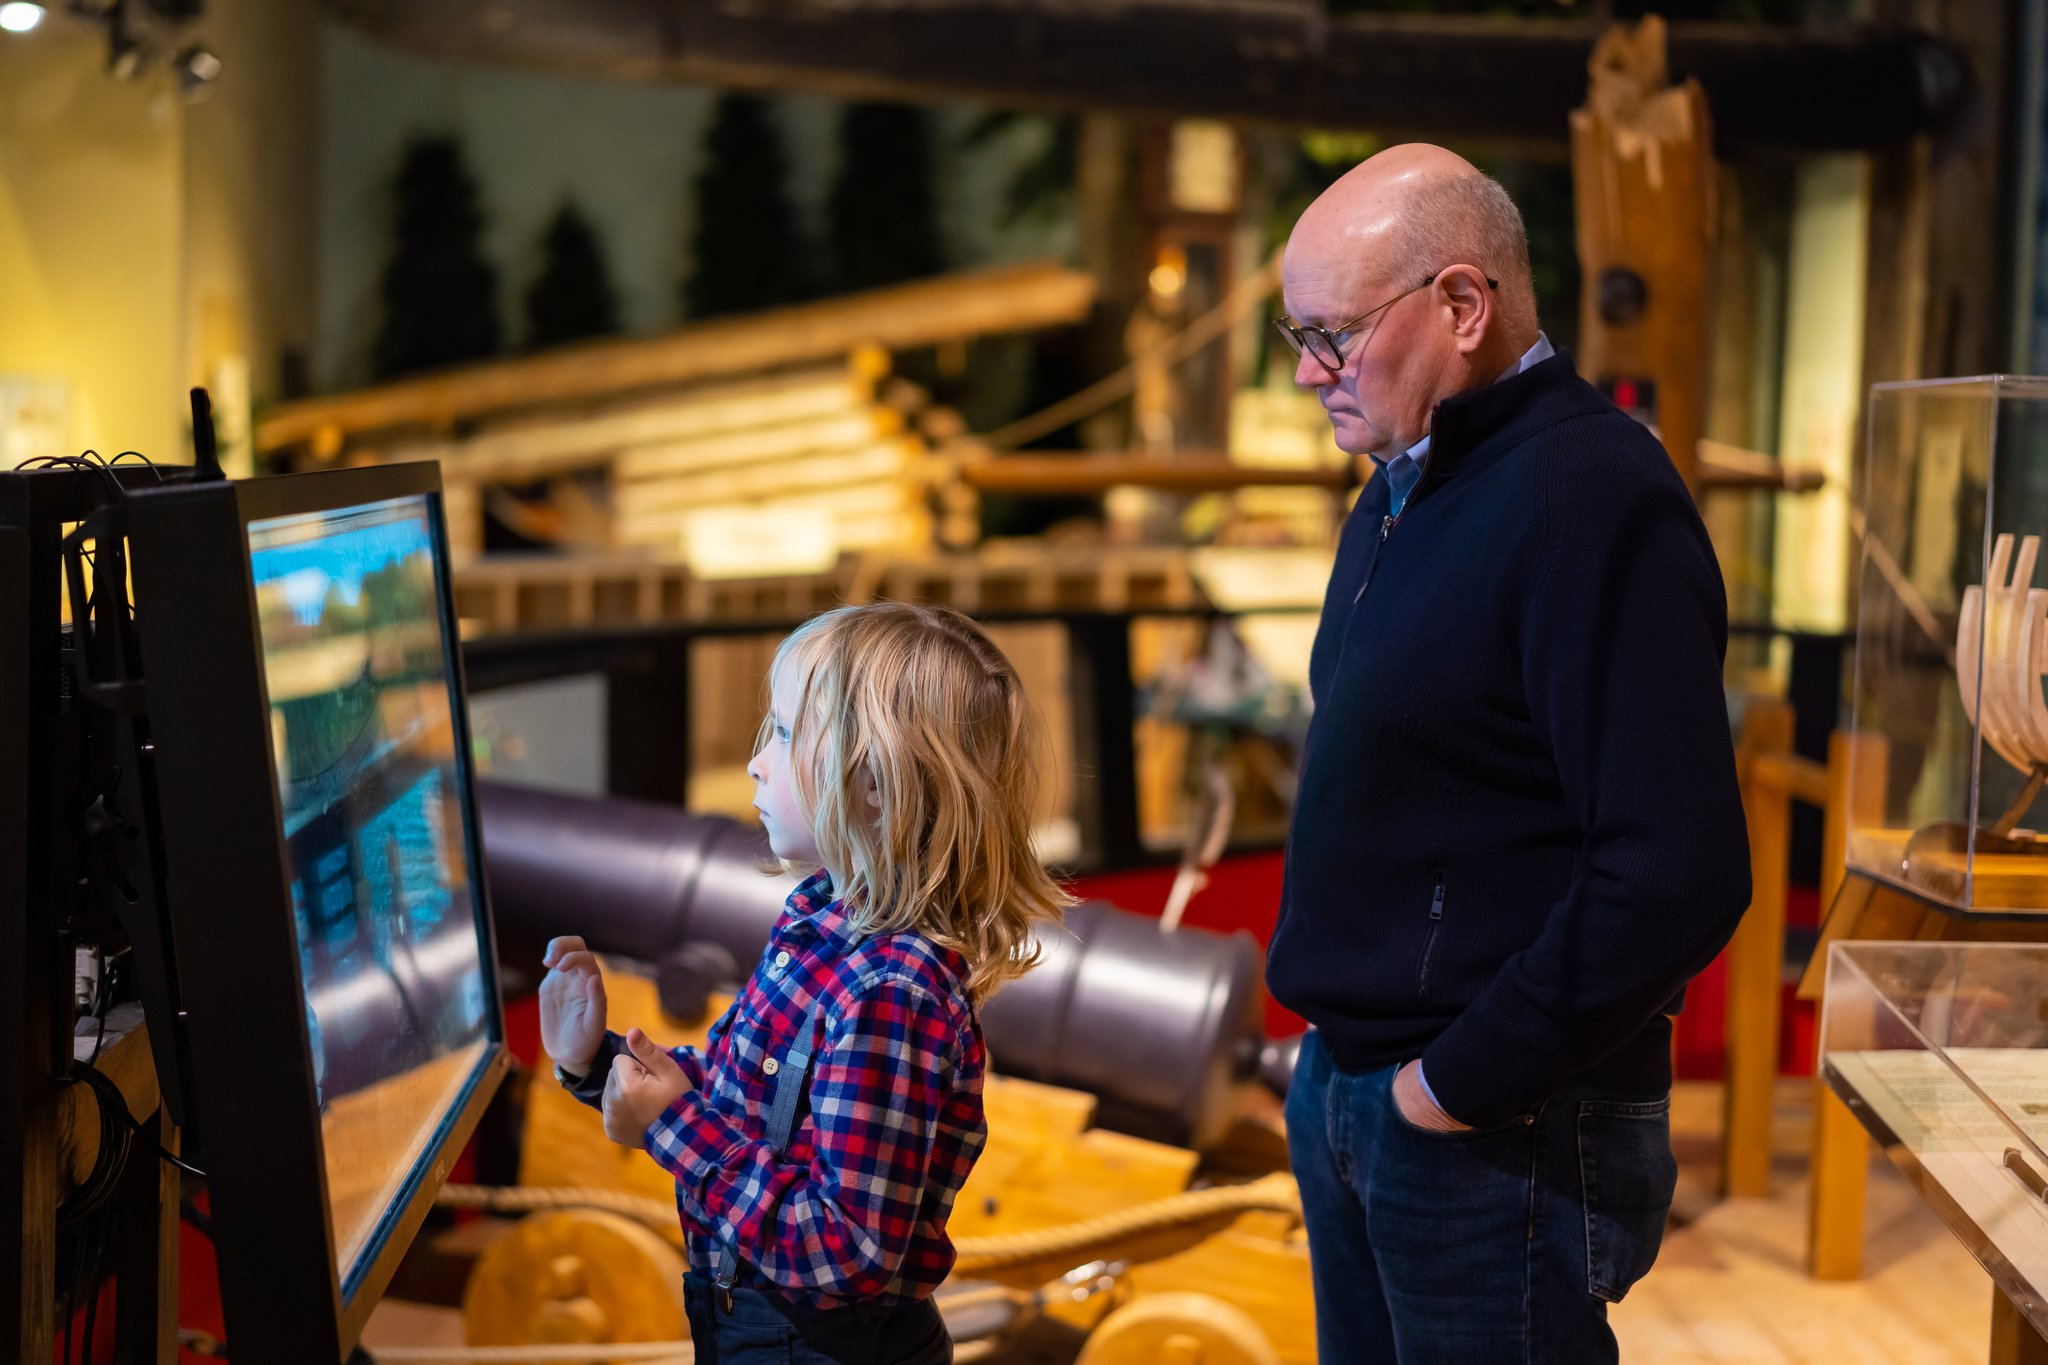 Photo of man and boy with interactive game